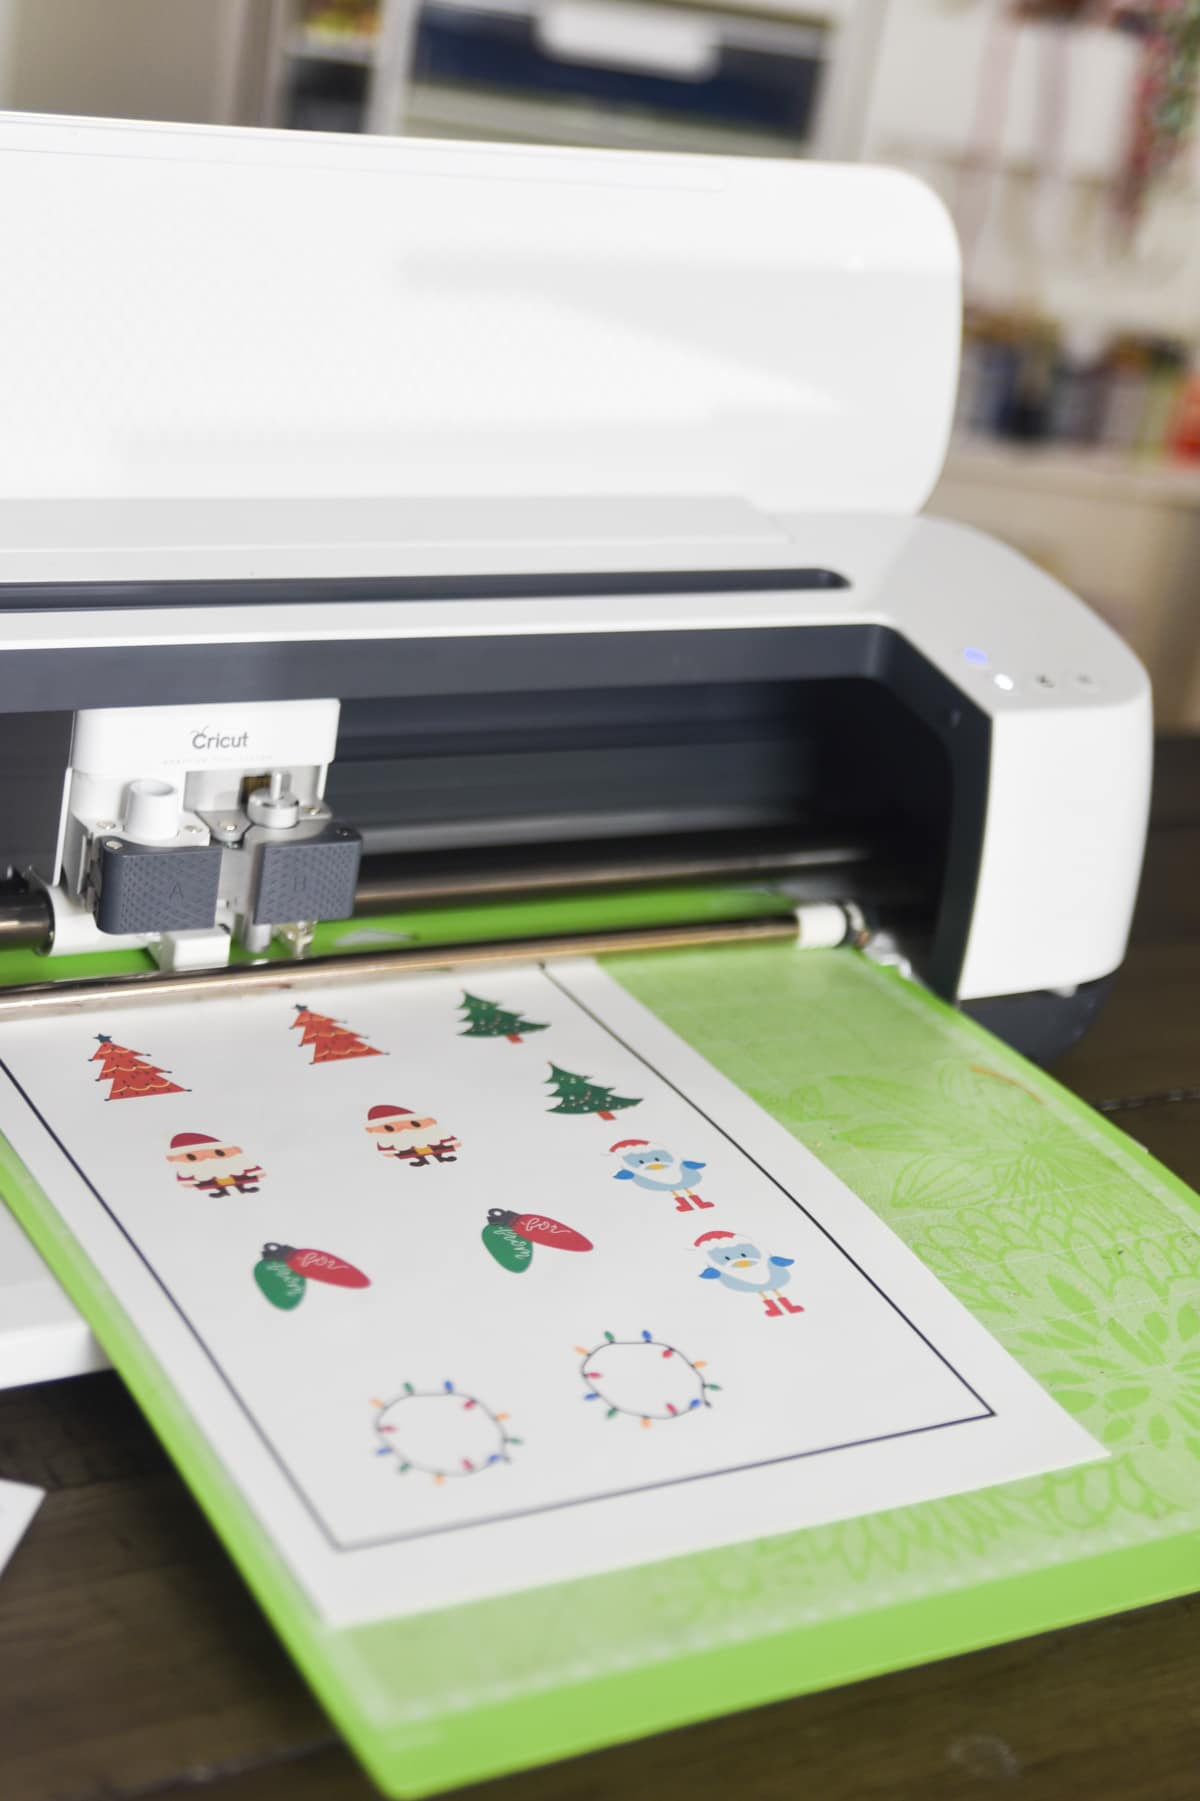 The Ultimate Guide to Cricut Print and Cut: Tips, Tricks and Troubleshooting